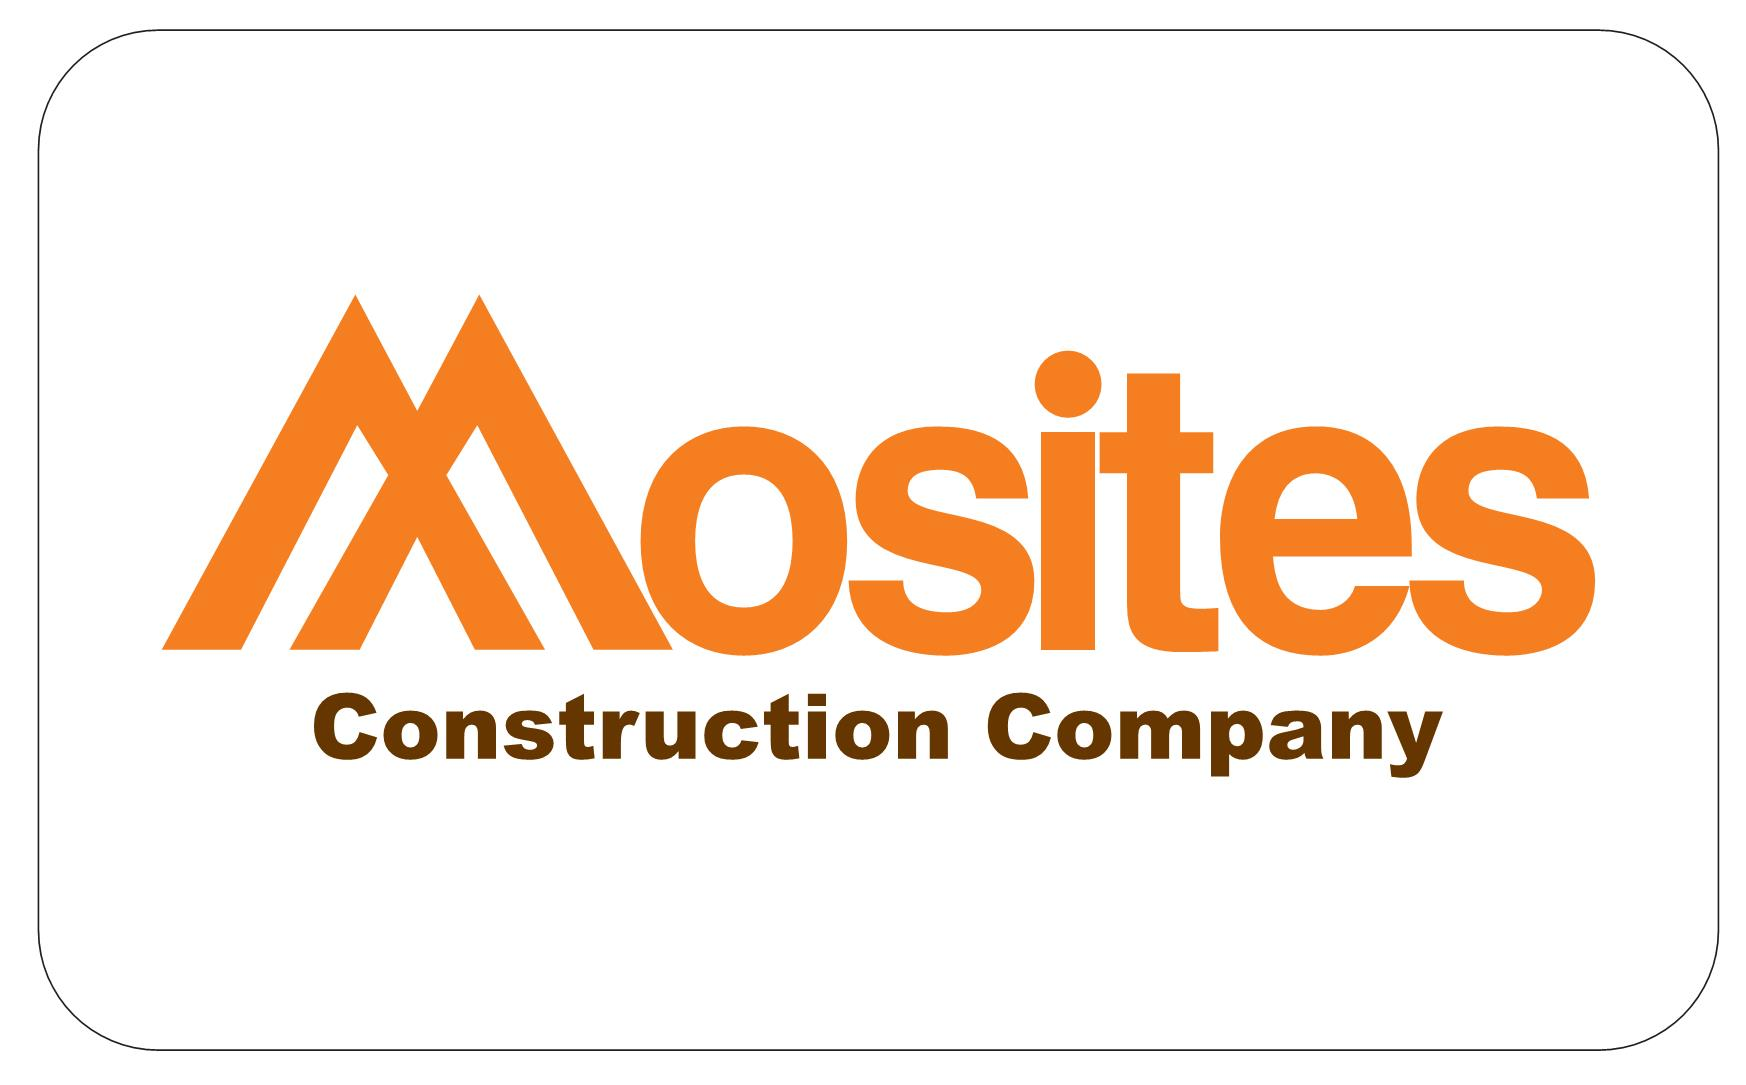 Mosites Construction Company (General Contractor)